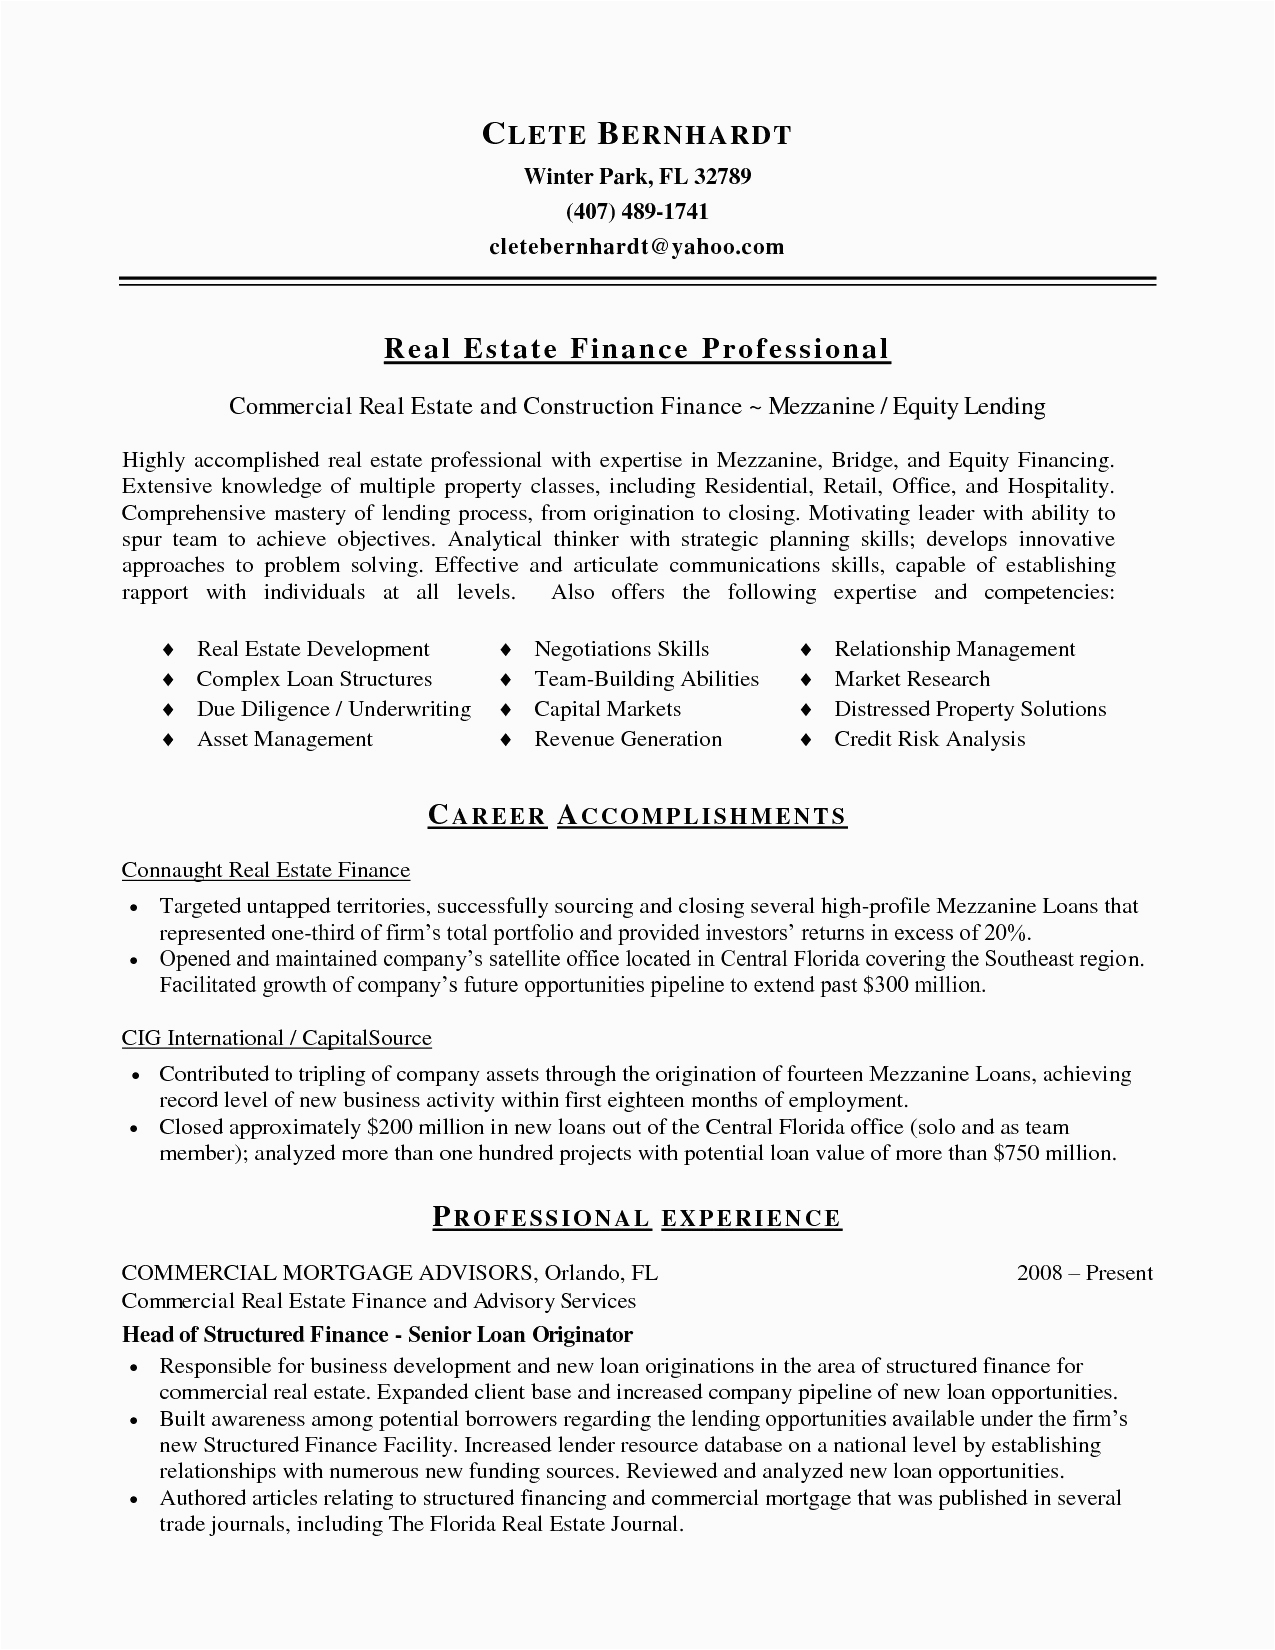 Sample Real Estate Resume No Experience 11 12 Sample Real Estate Resume No Experience